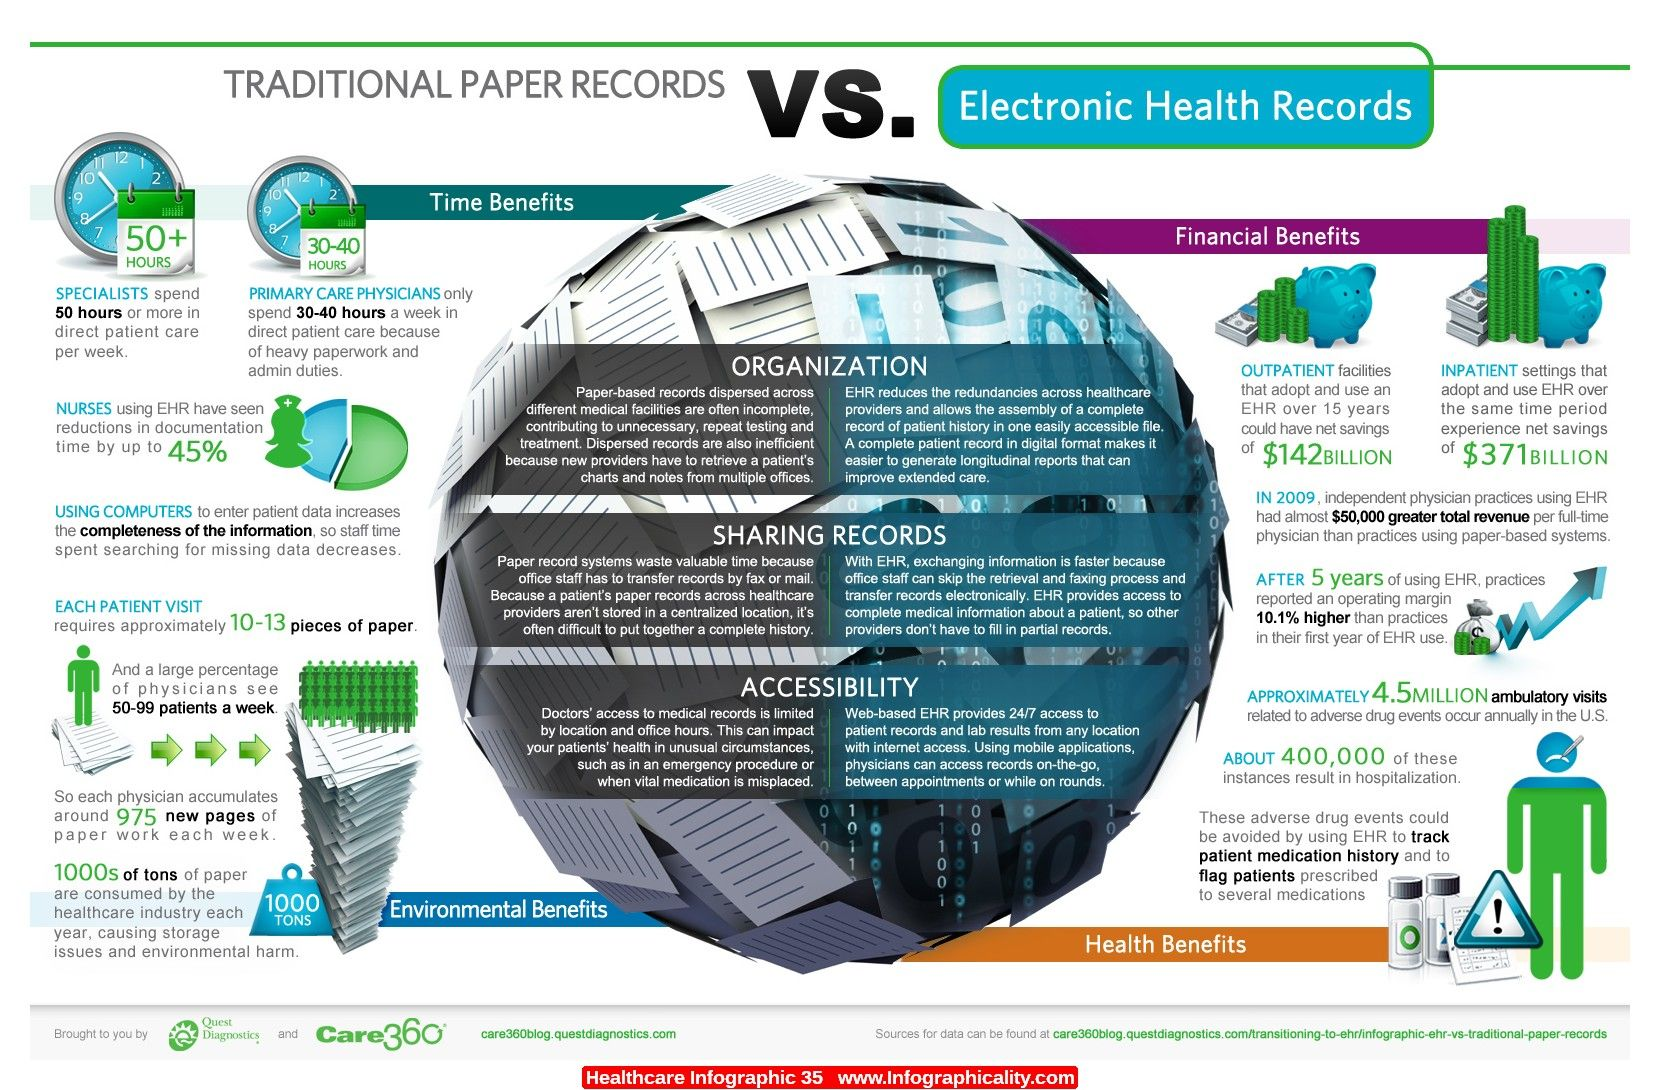 Healthcare Infographic 35 - http://infographicality.com/healthcare-infographic-35/